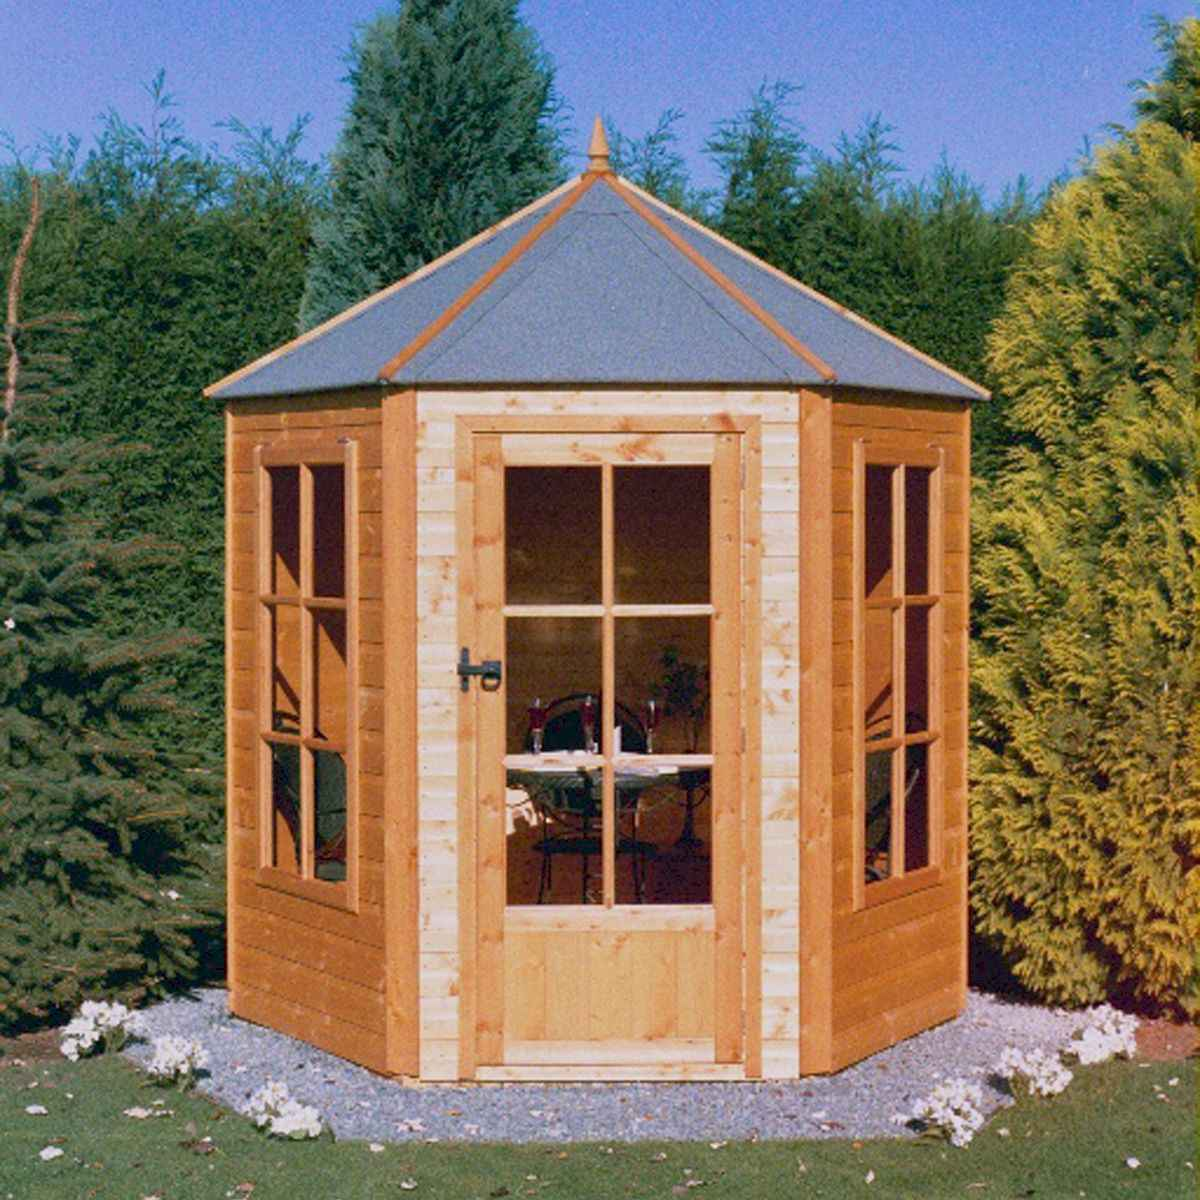 90 beautiful summer house design ideas and makeover make your summer awesome (16)